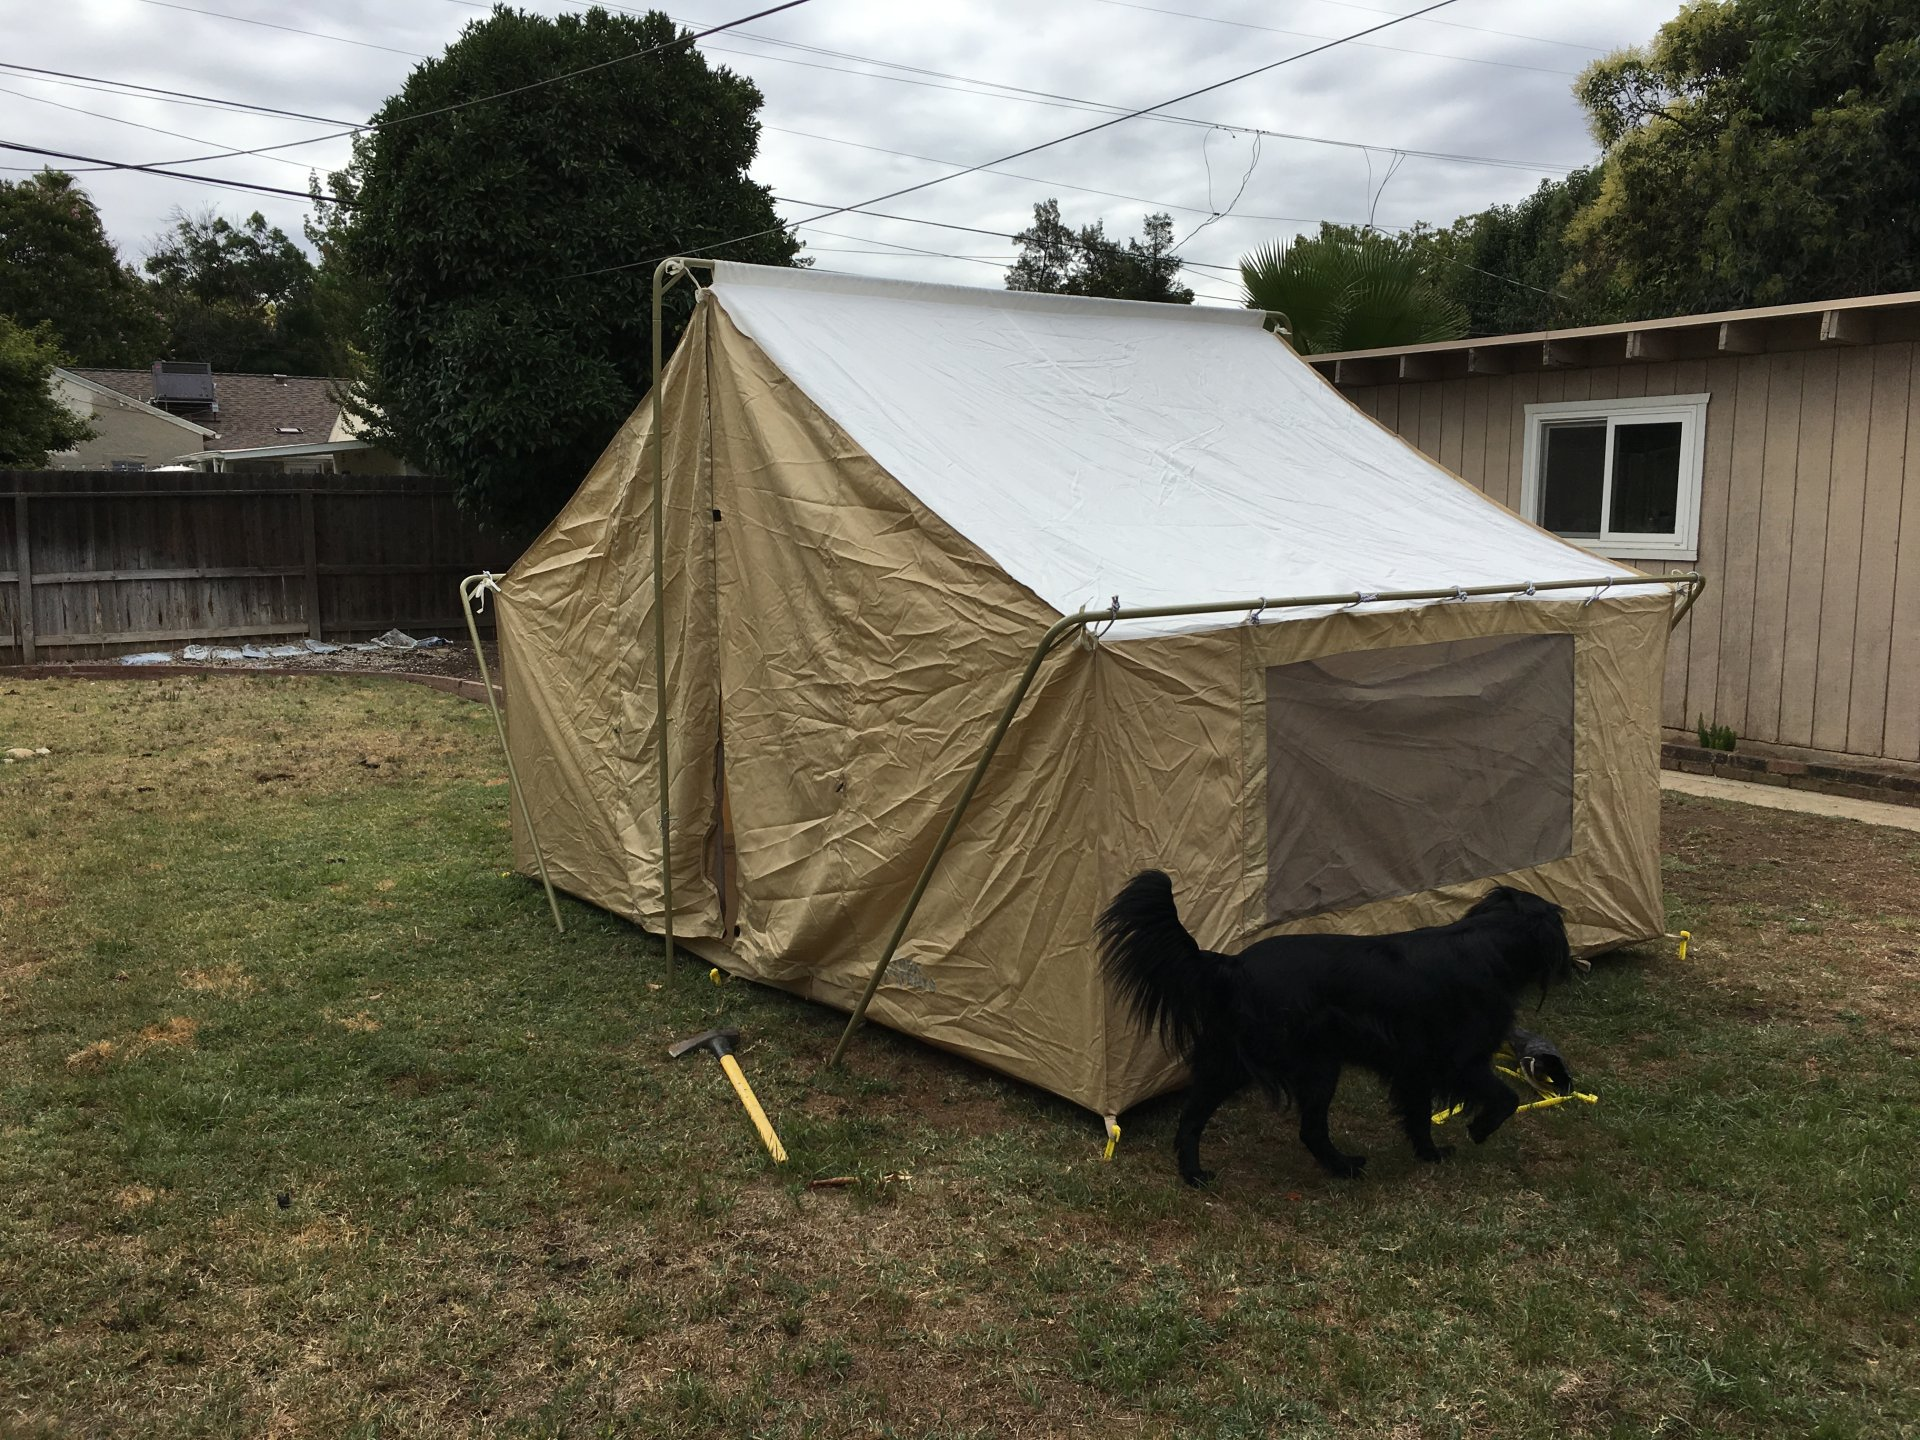 & Who uses a stand-alone tent? | Page 4 | IH8MUD Forum